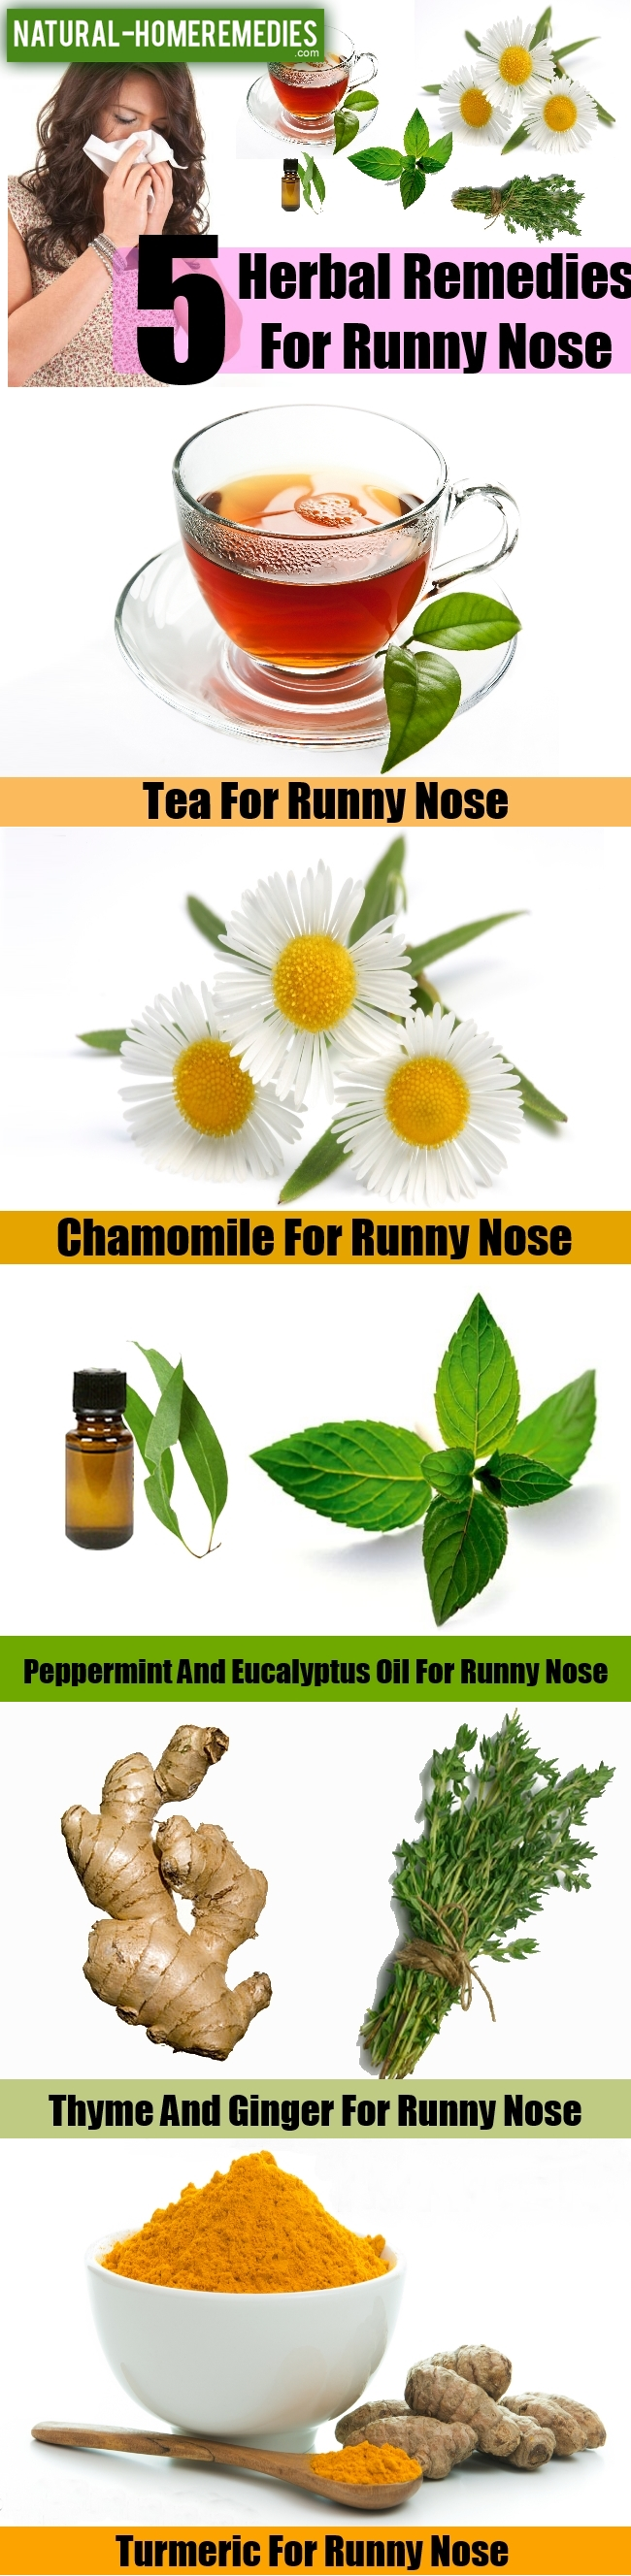 Top 5 Herbal Remedies For Runny Nose